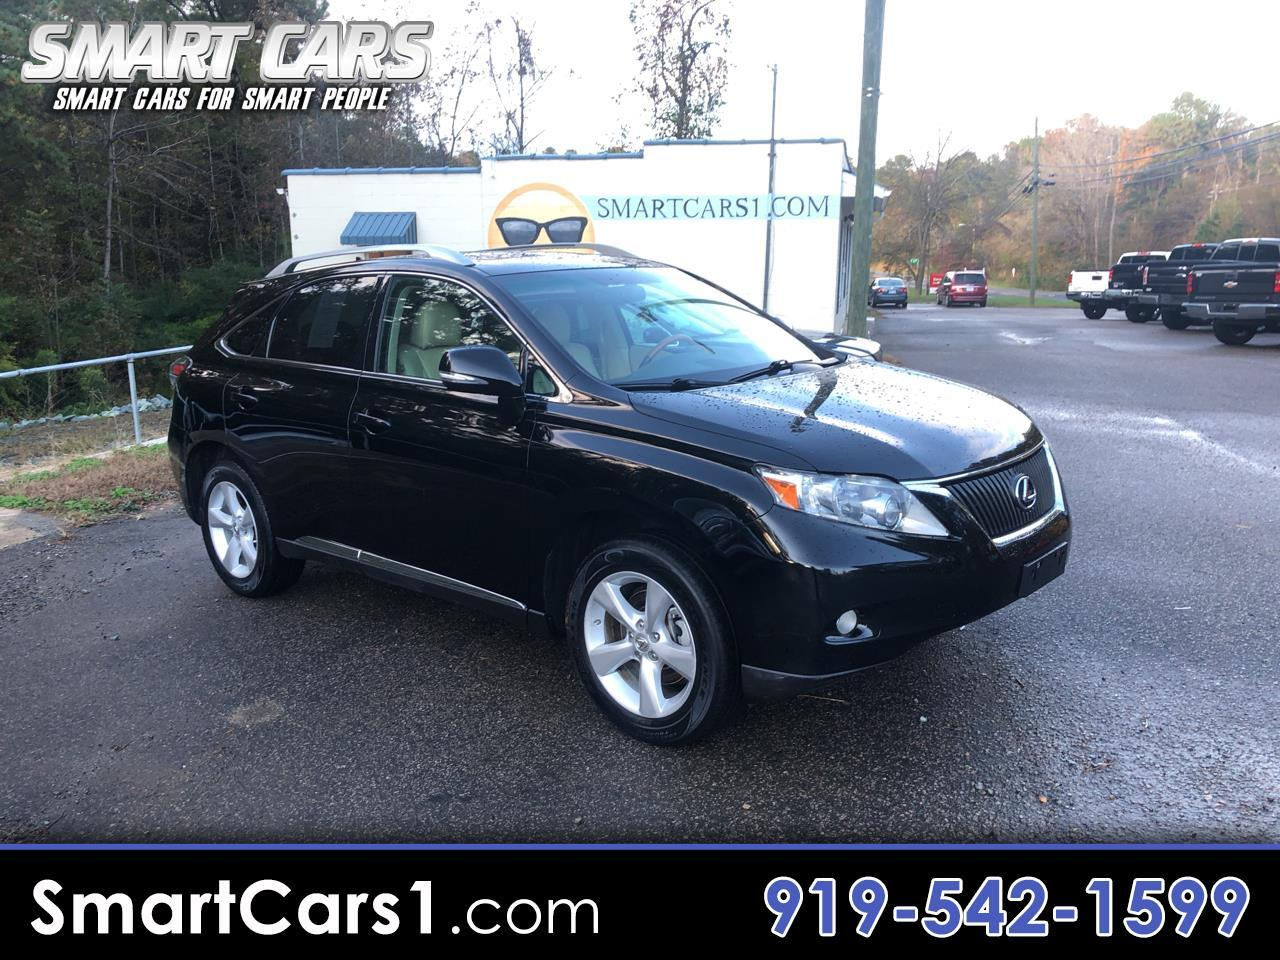 Used 2010 Lexus Rx 350 For Sale In Pittsboro Nc 27312 Smart Cars By